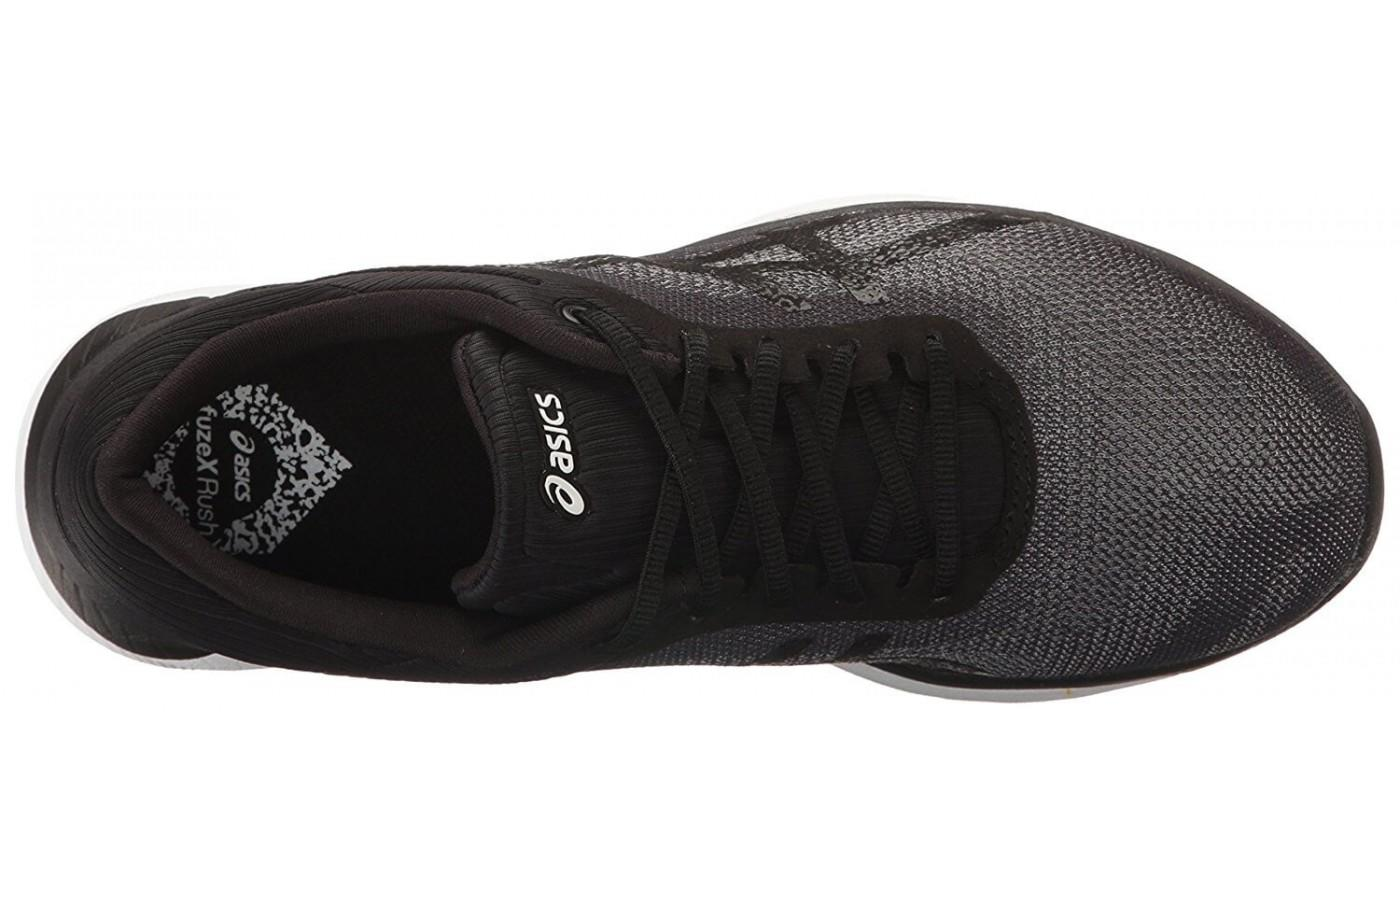 The upper is lightweight and breathable.